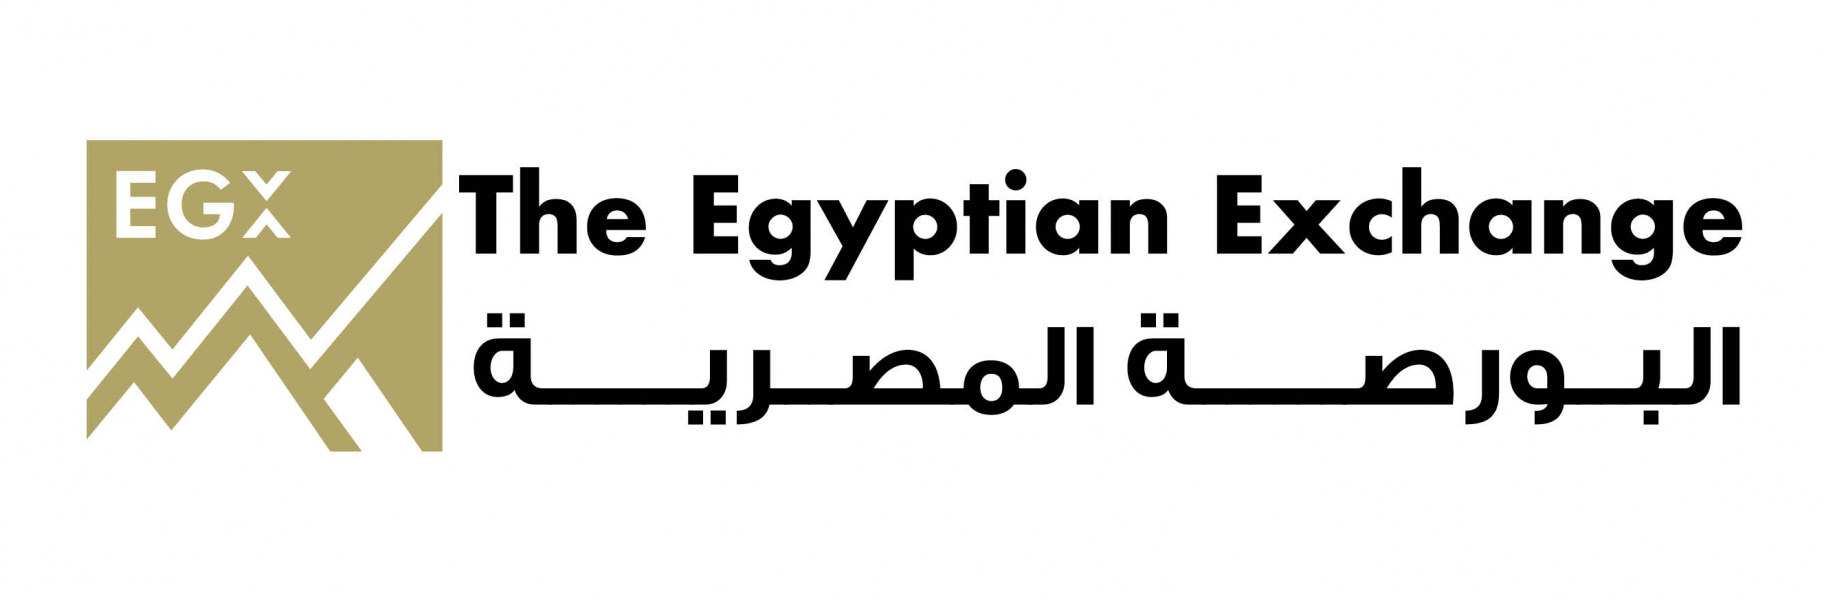 The-Egyptian-Exchange-Allows-Intraday-Trading-on-1